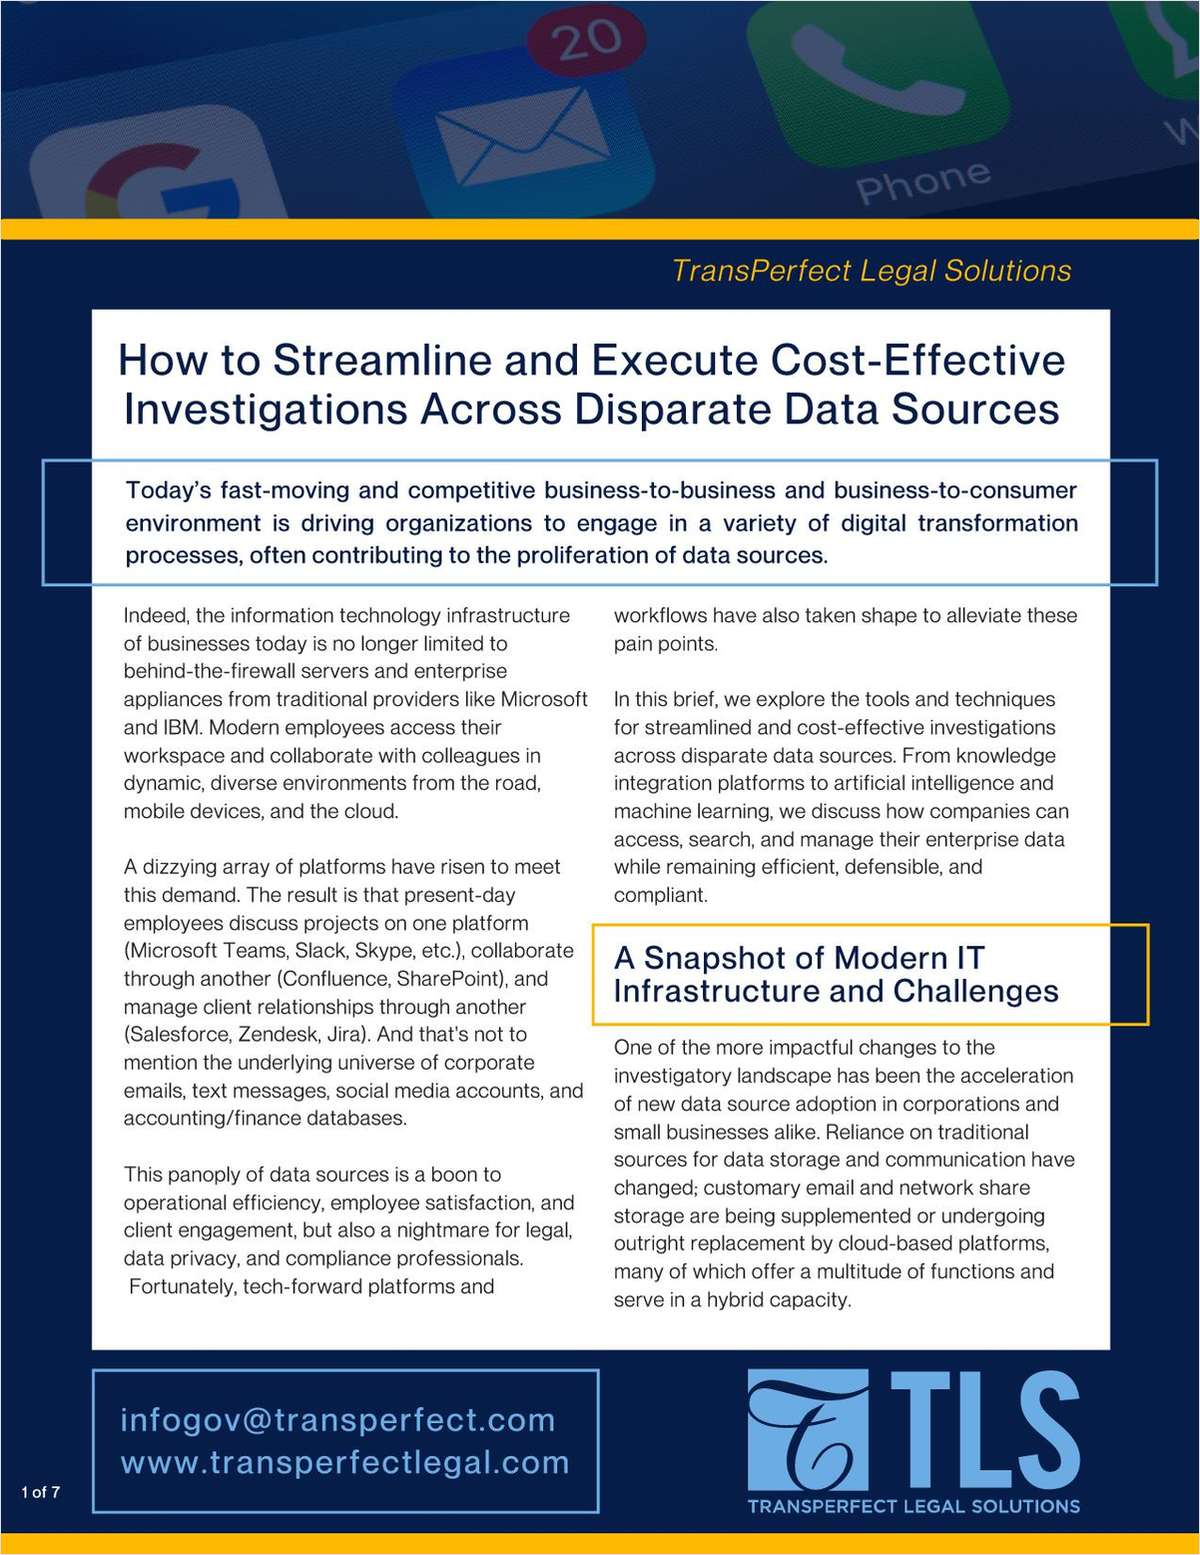 Download this brief for tools and techniques in accessing, searching and managing enterprise data while remaining efficient, defensible and compliant.